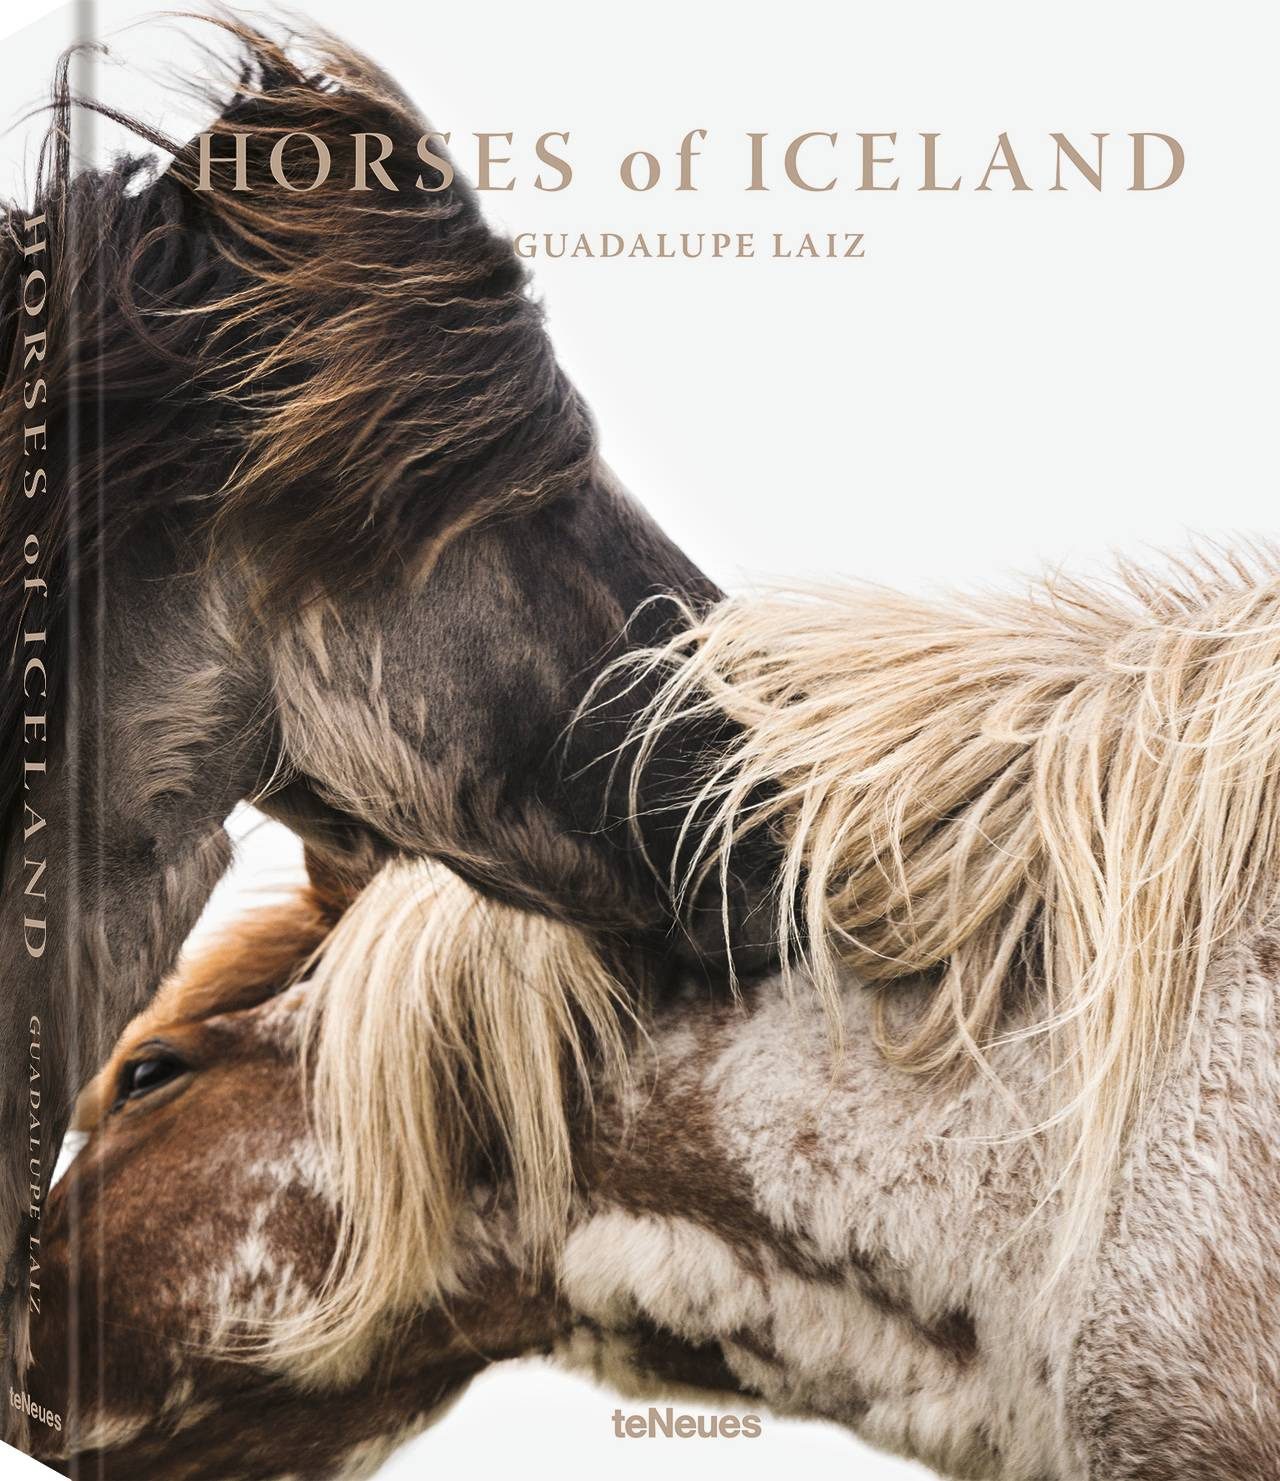 © Horses of Iceland by Guadalupe Laiz, published by teNeues, www.teneues.com, Love, Photo © 2019 Guadalupe Laiz. All rights reserved.